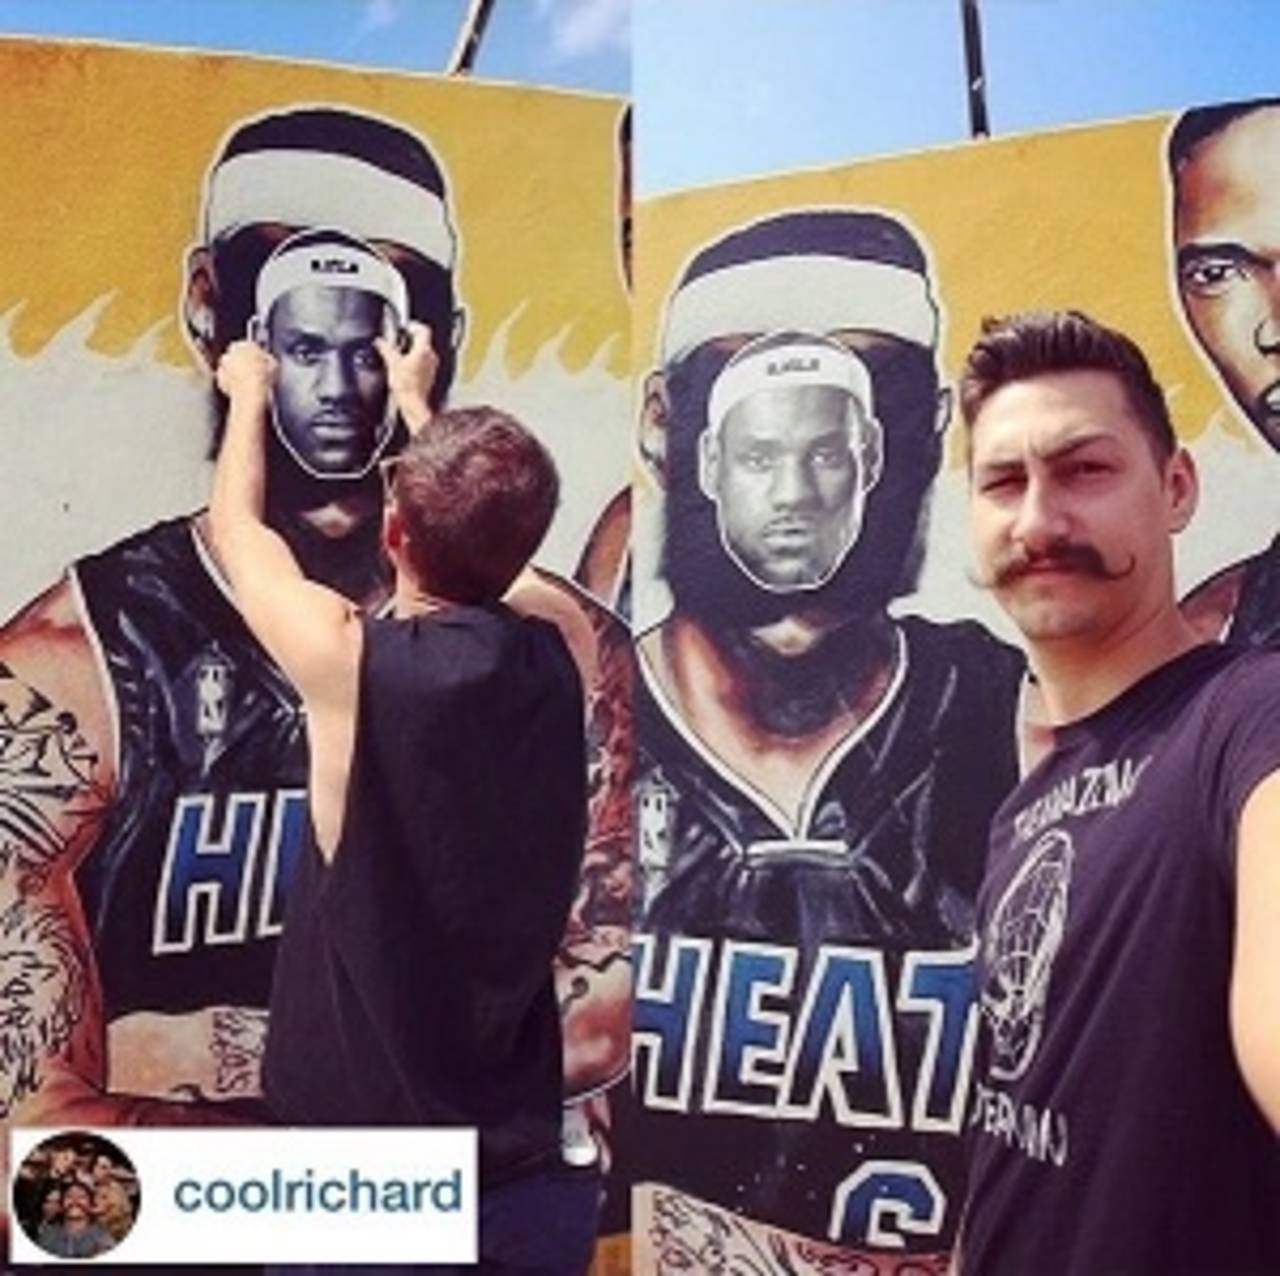 LeBron James Cutout Covers Defaced Mural_26922004